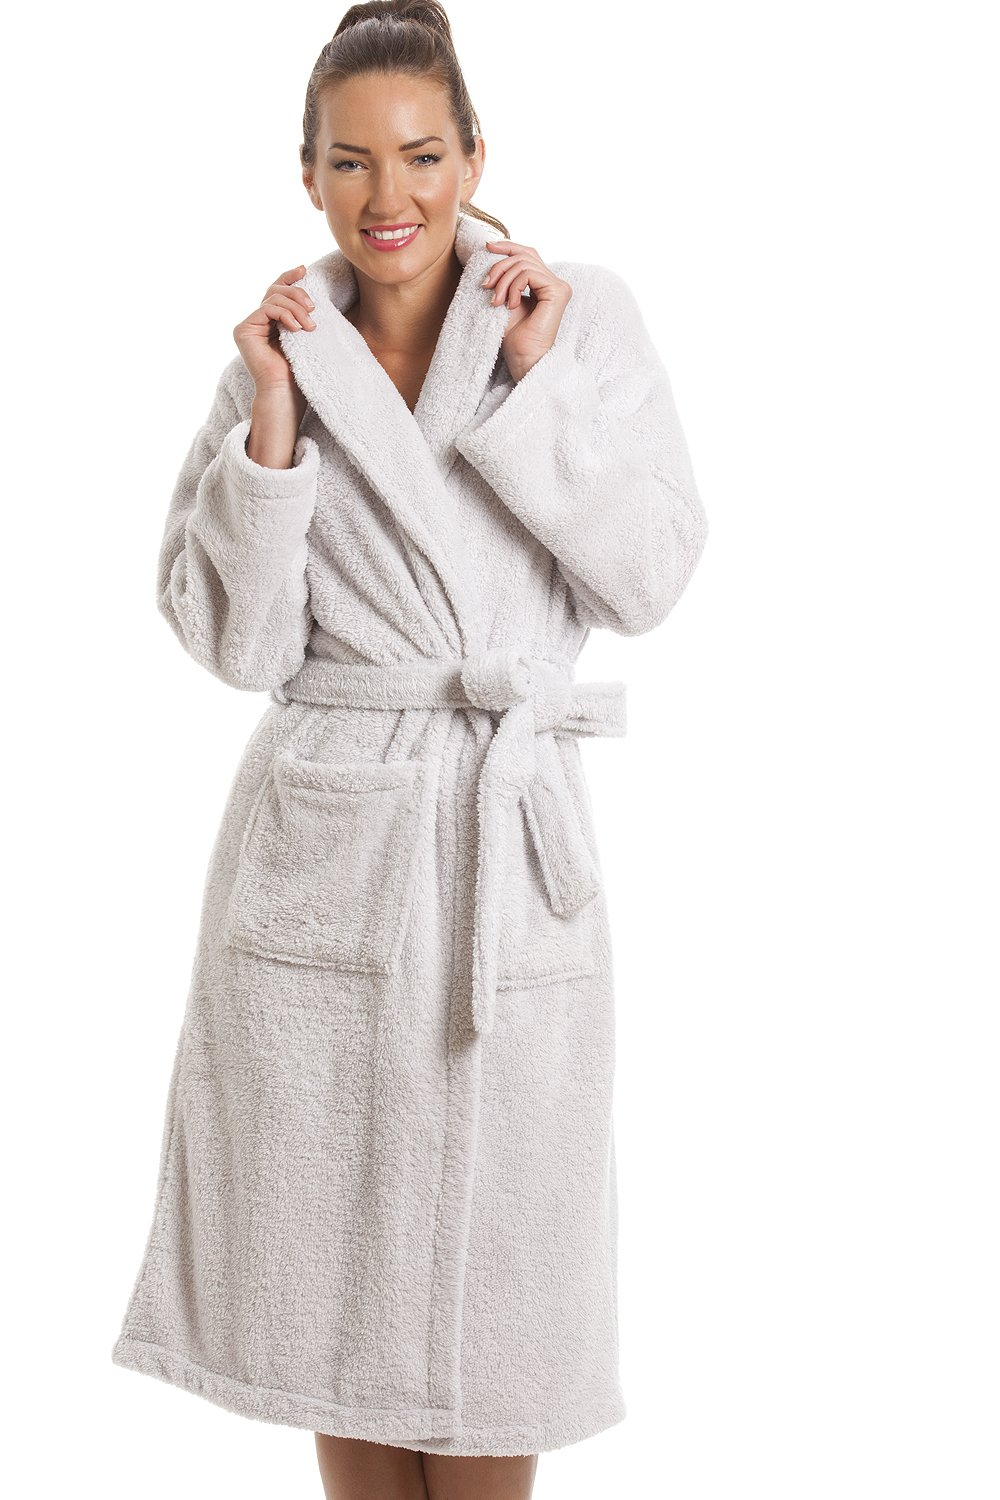 Bathrobe Wikipedia